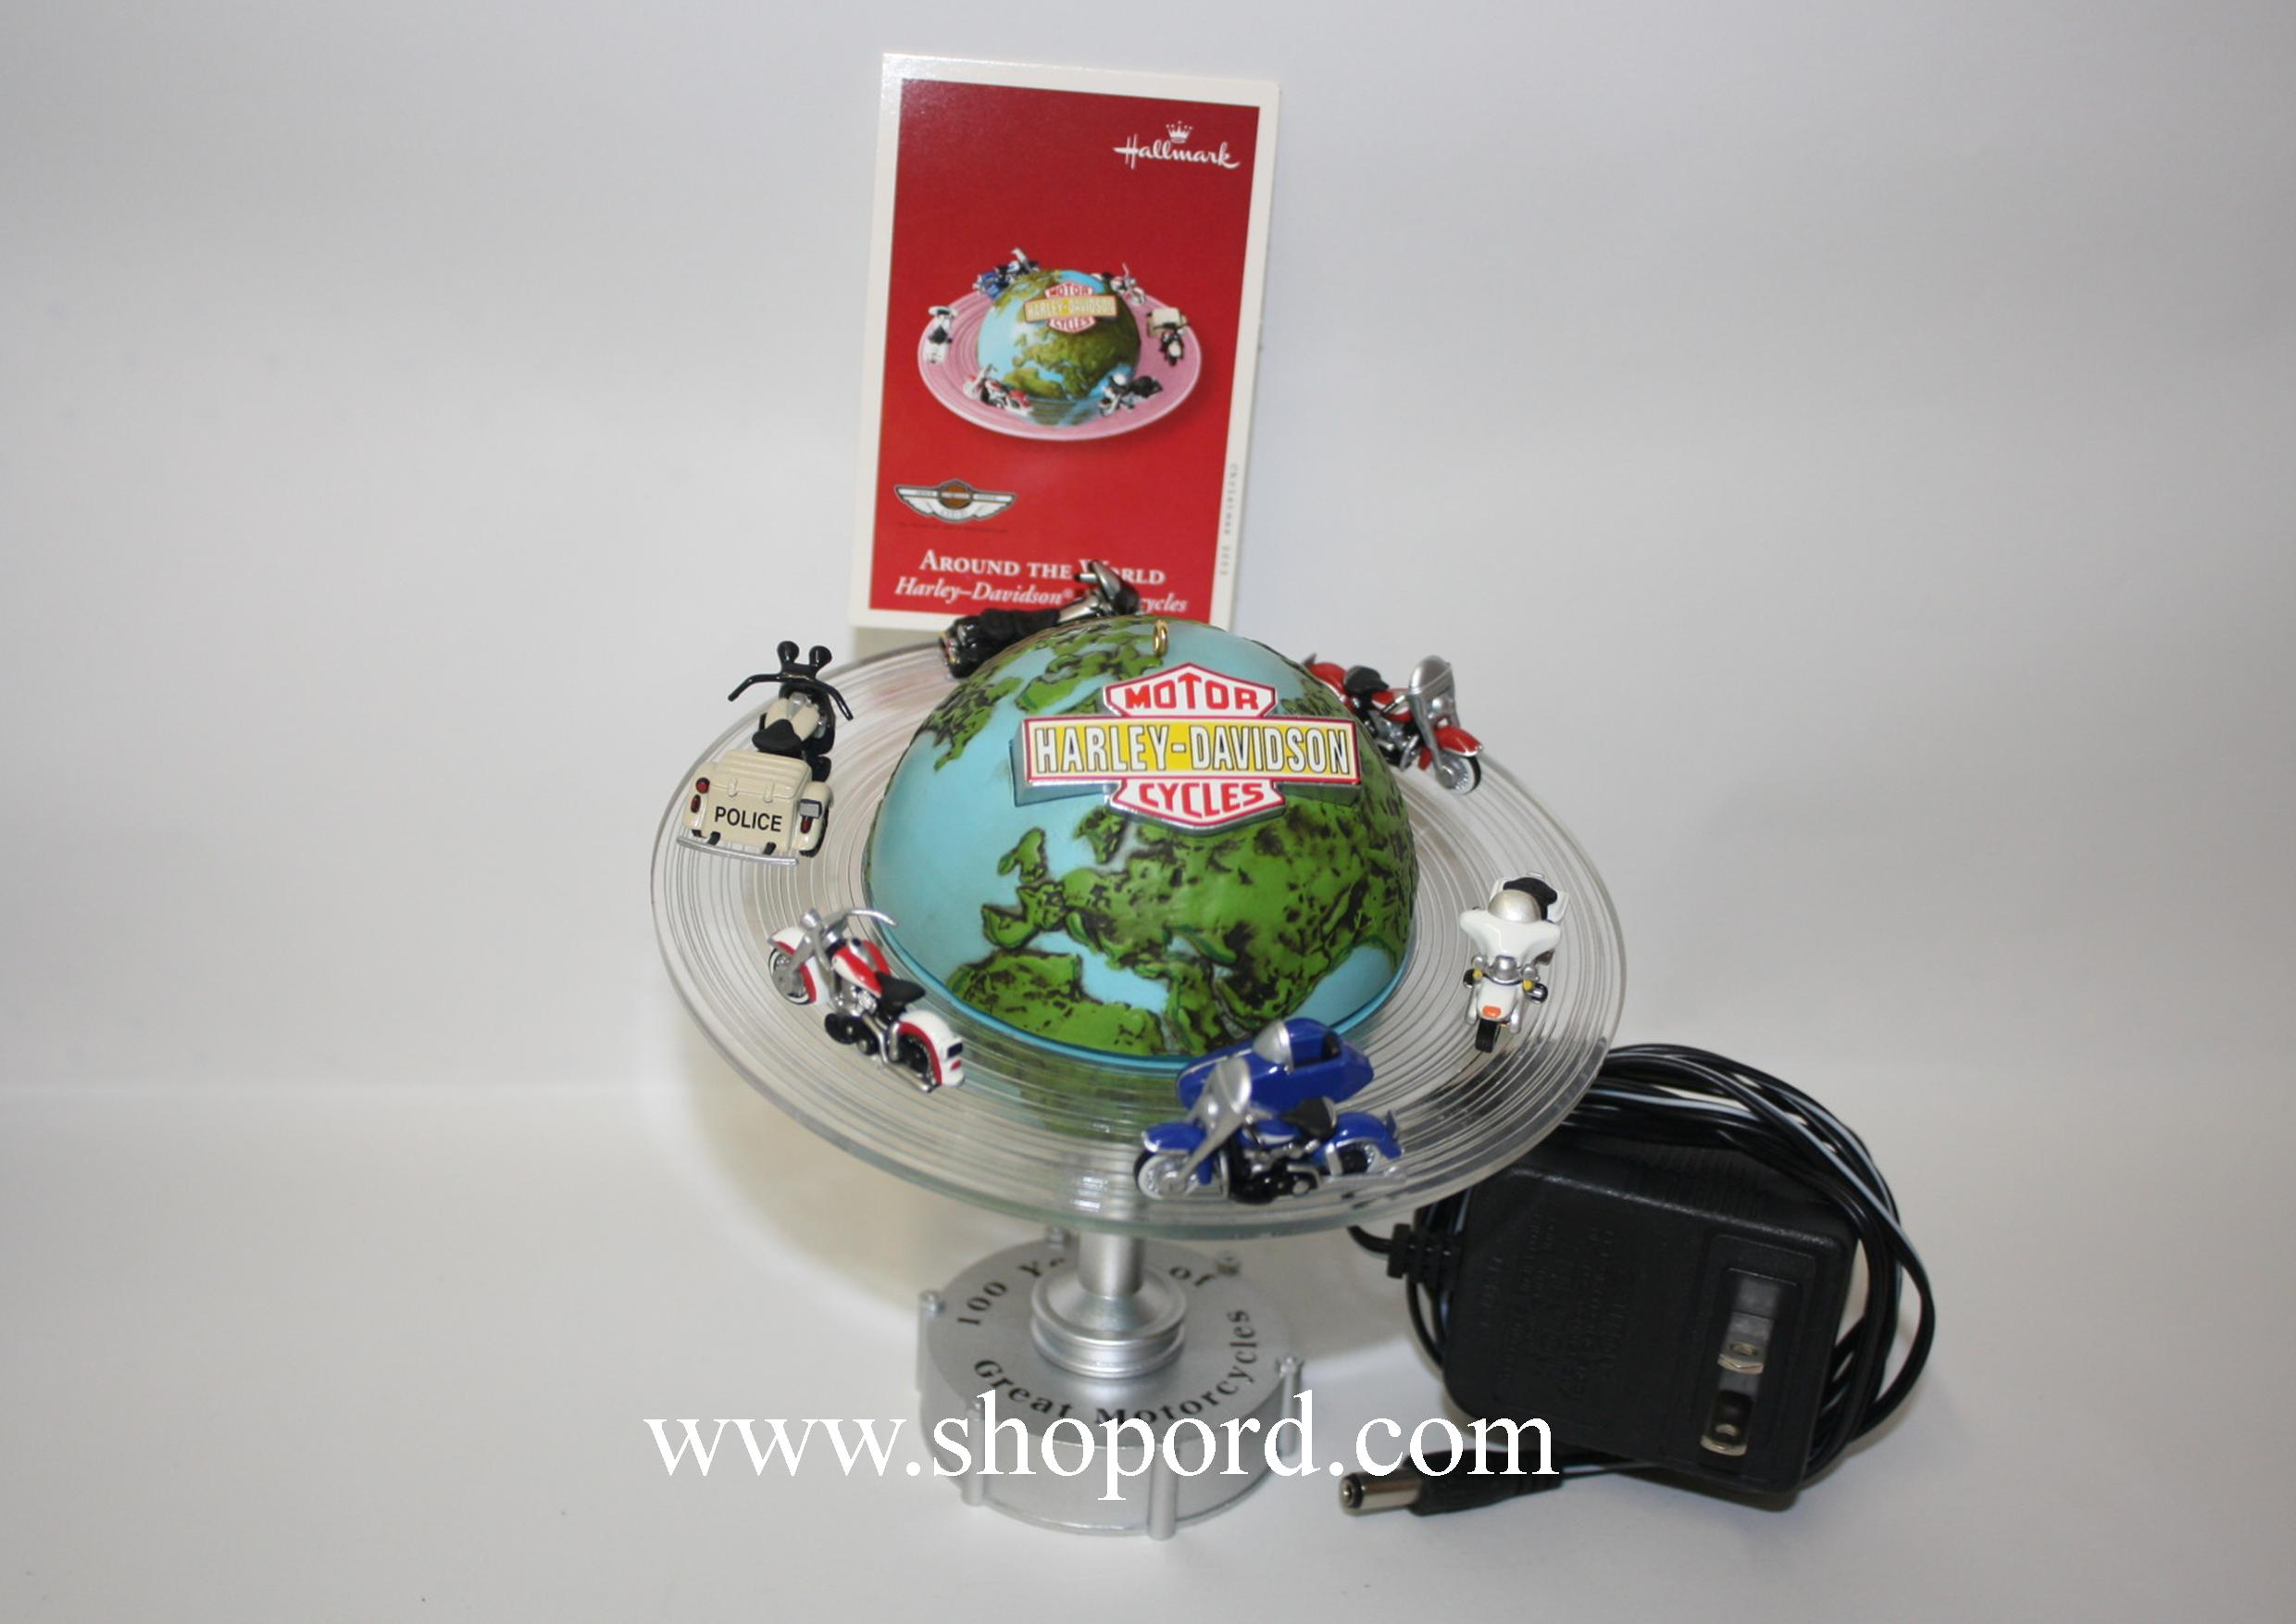 Hallmark 2003 Around The World Ornament Harley Davidson Motorcycles QXI7489